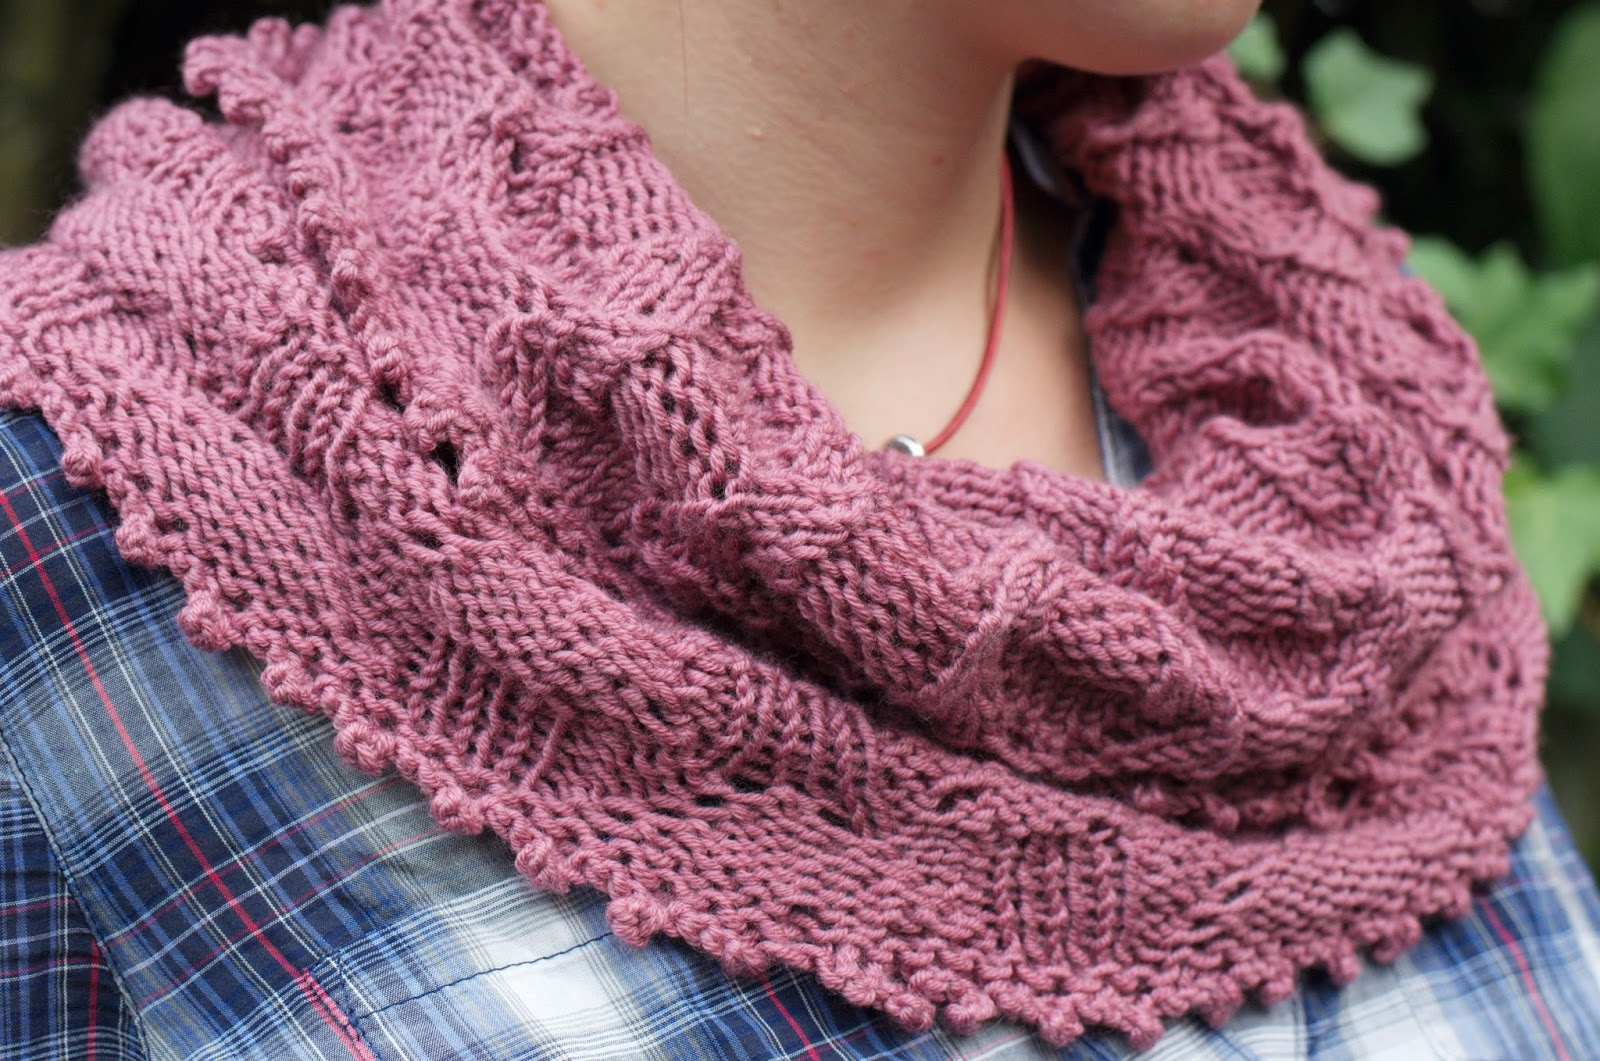 Ela Sews And Doesn\'t Sleep: May I proudly present my knitted lace scarf!